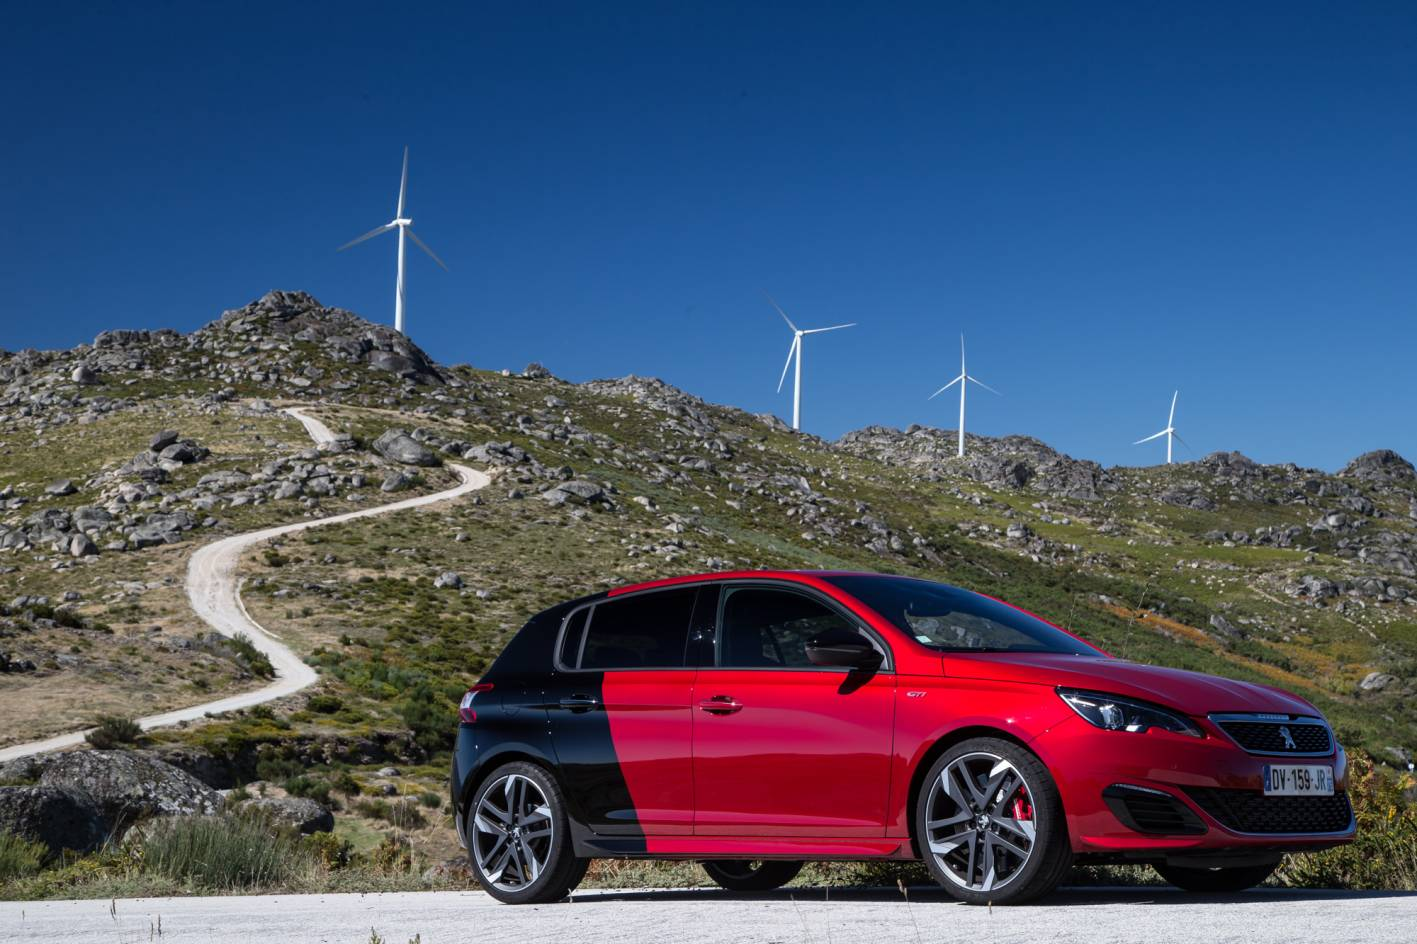 peugeot 39 s 308 gti duo will arrive in australia from under 50k. Black Bedroom Furniture Sets. Home Design Ideas